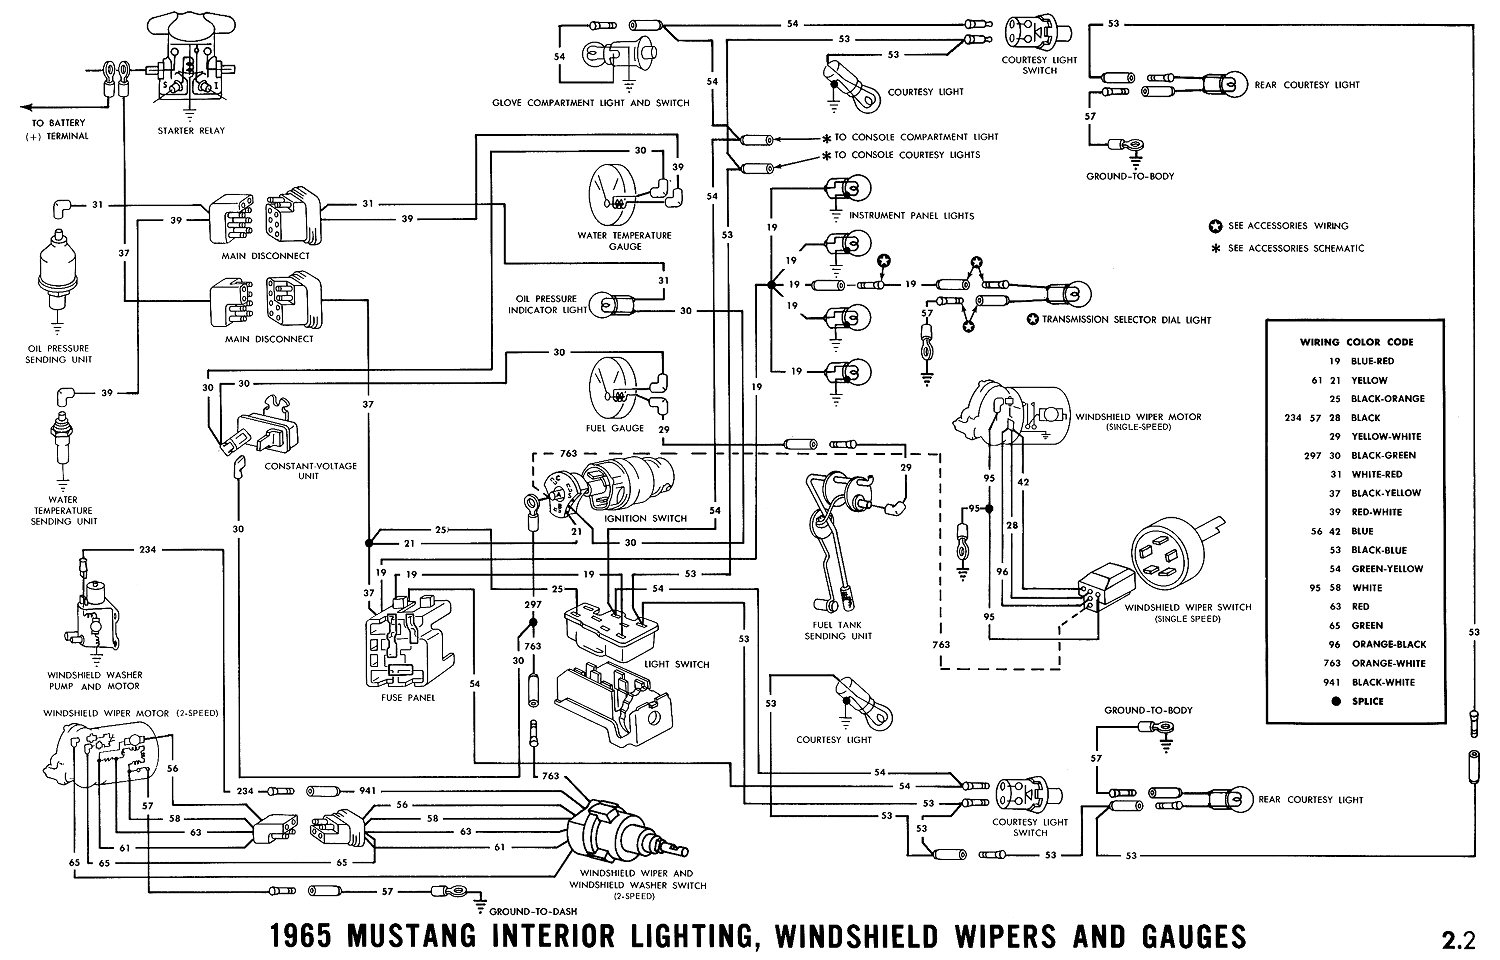 66 Mustang Wiring Color Code - Wiring Diagram Name - 66 Mustang Wiring Diagram